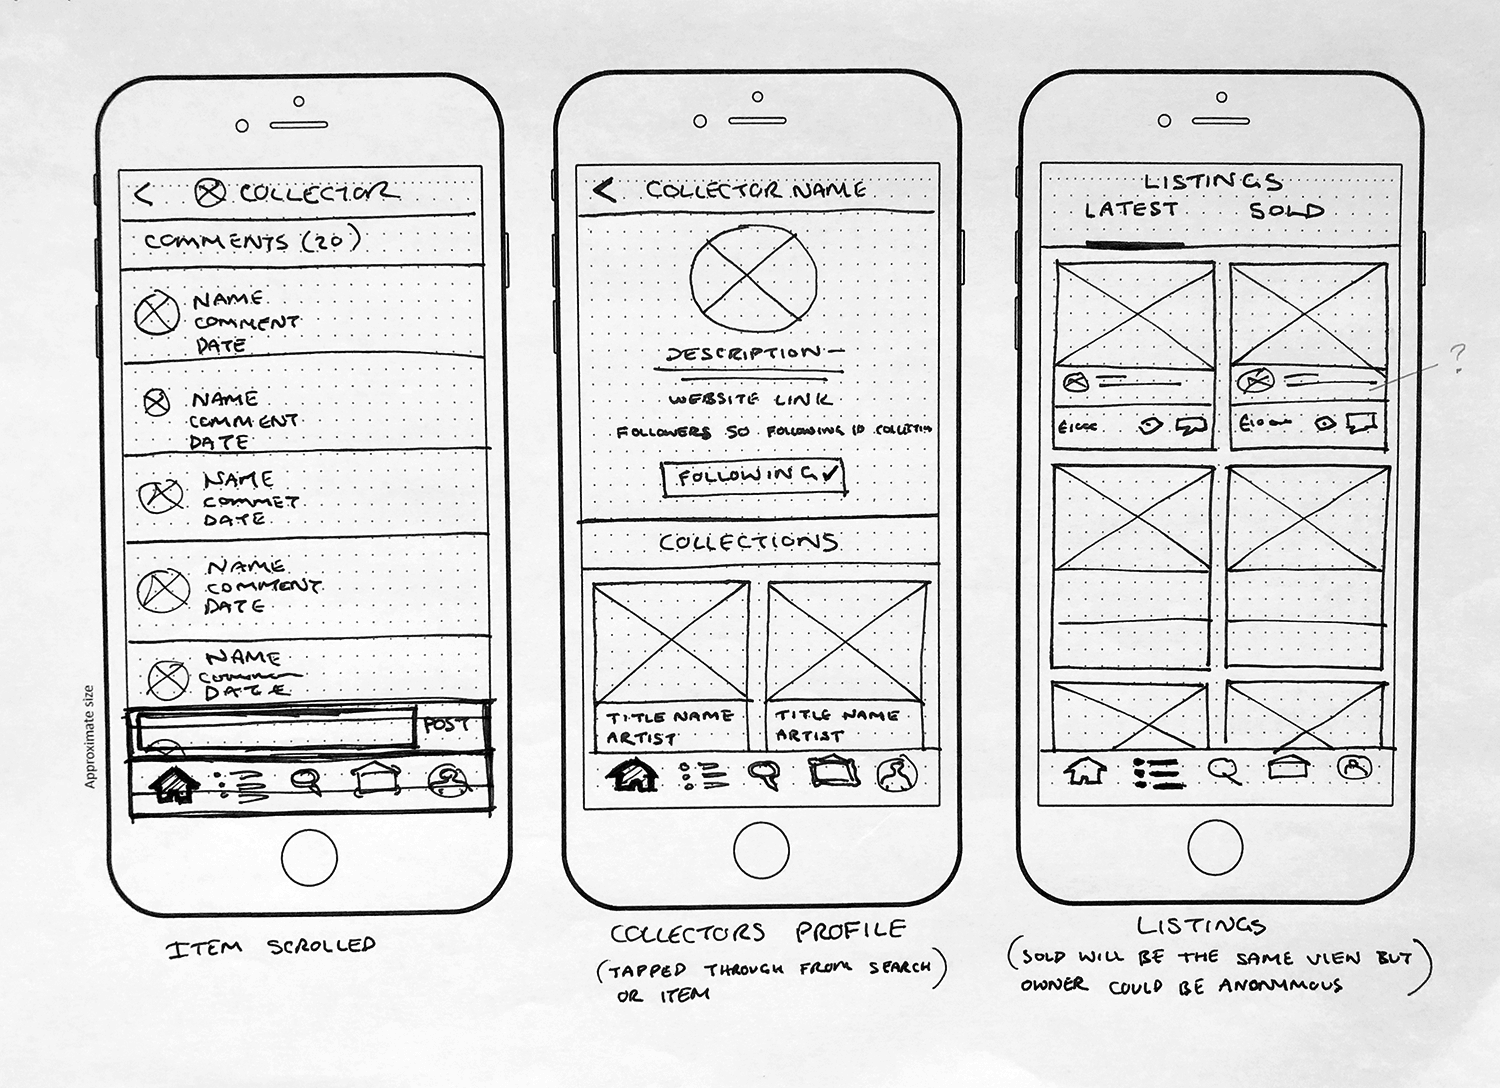 wireframe1 image